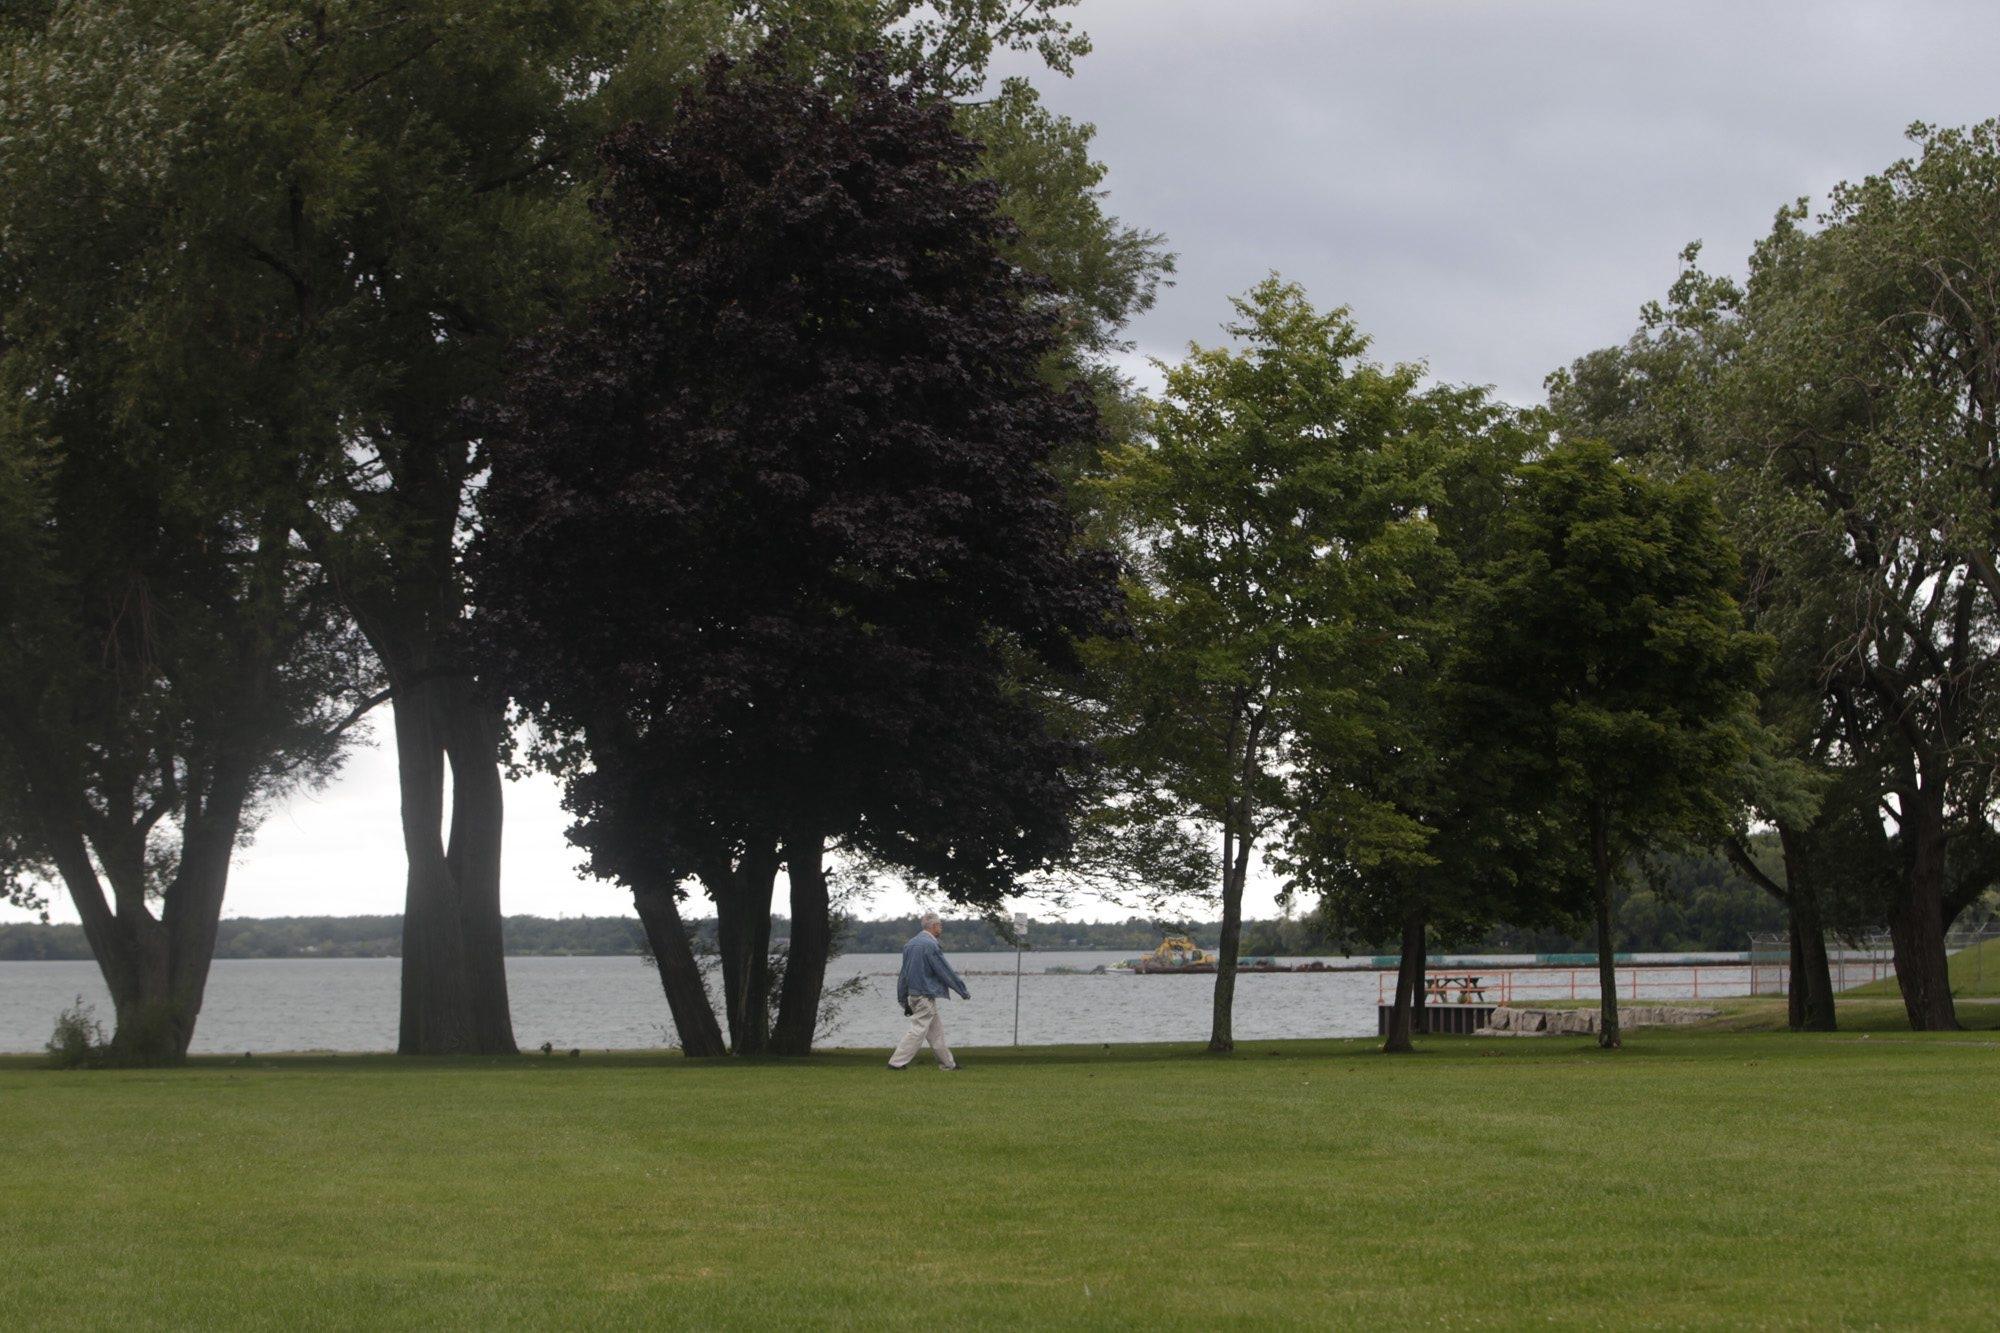 A pedestrian walks Tuesday on Aqua Lane in the Town of Tonawanda under overcast skies.